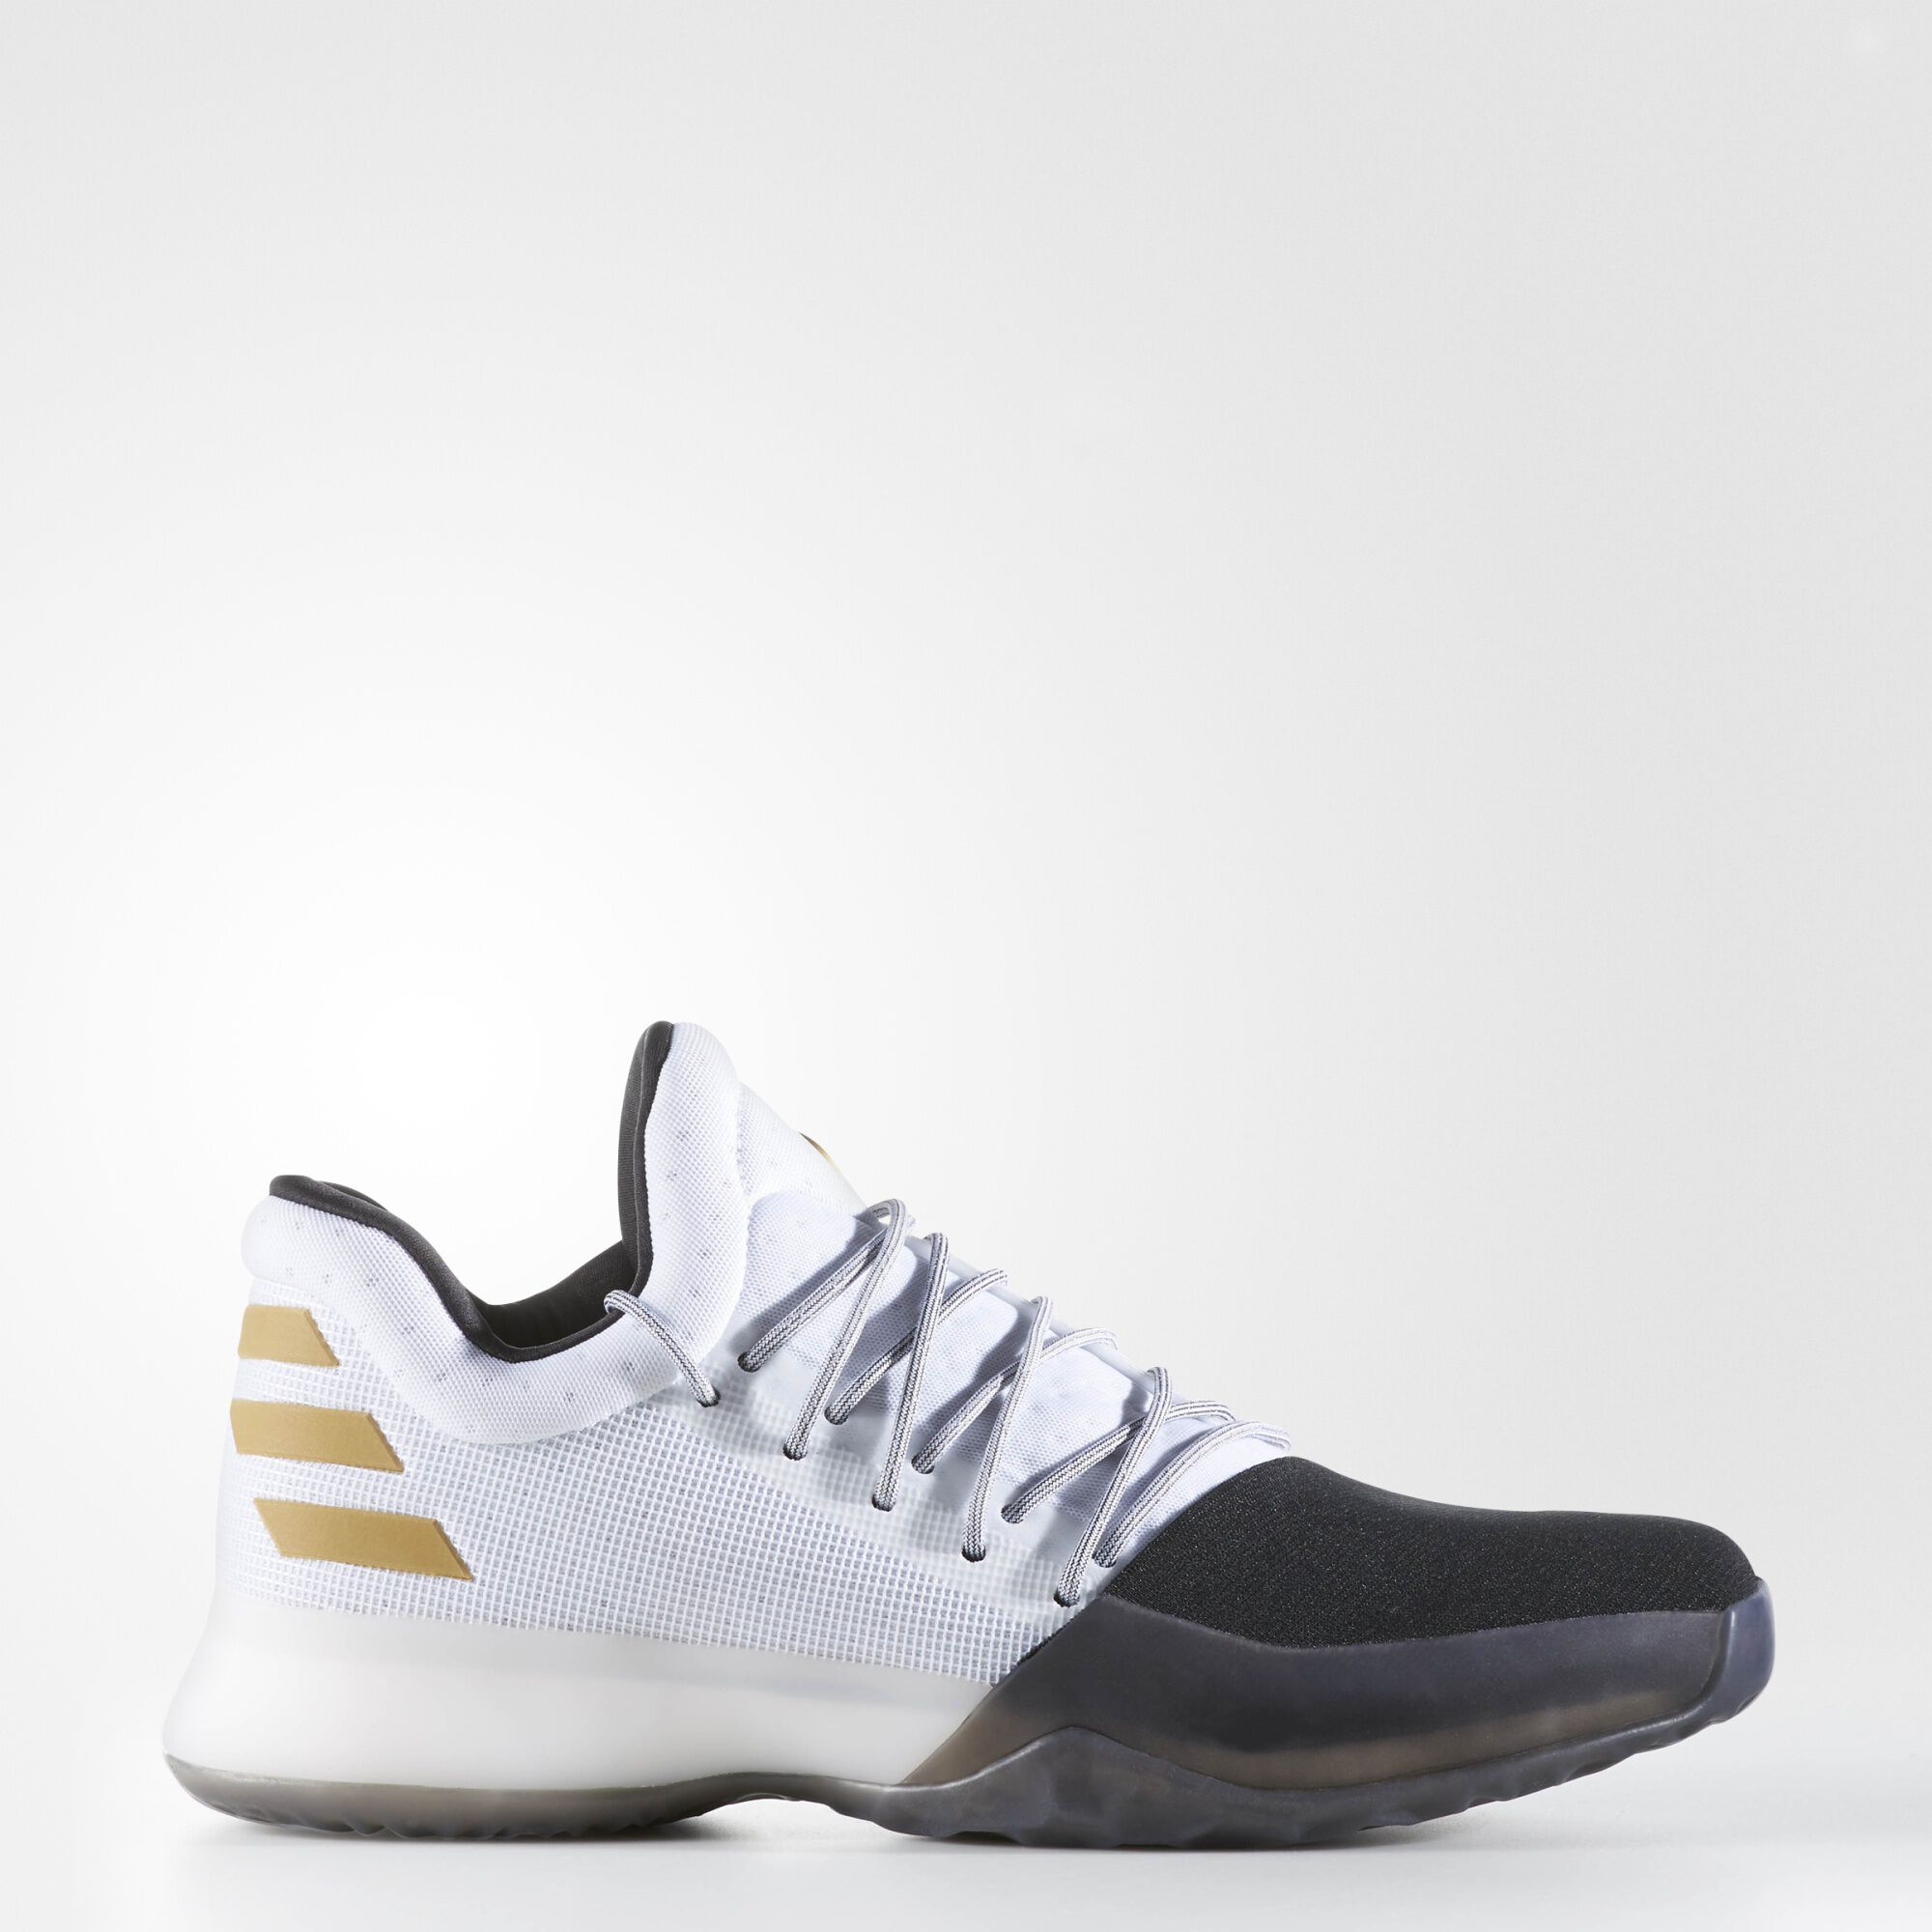 Adidas Gold Shoes